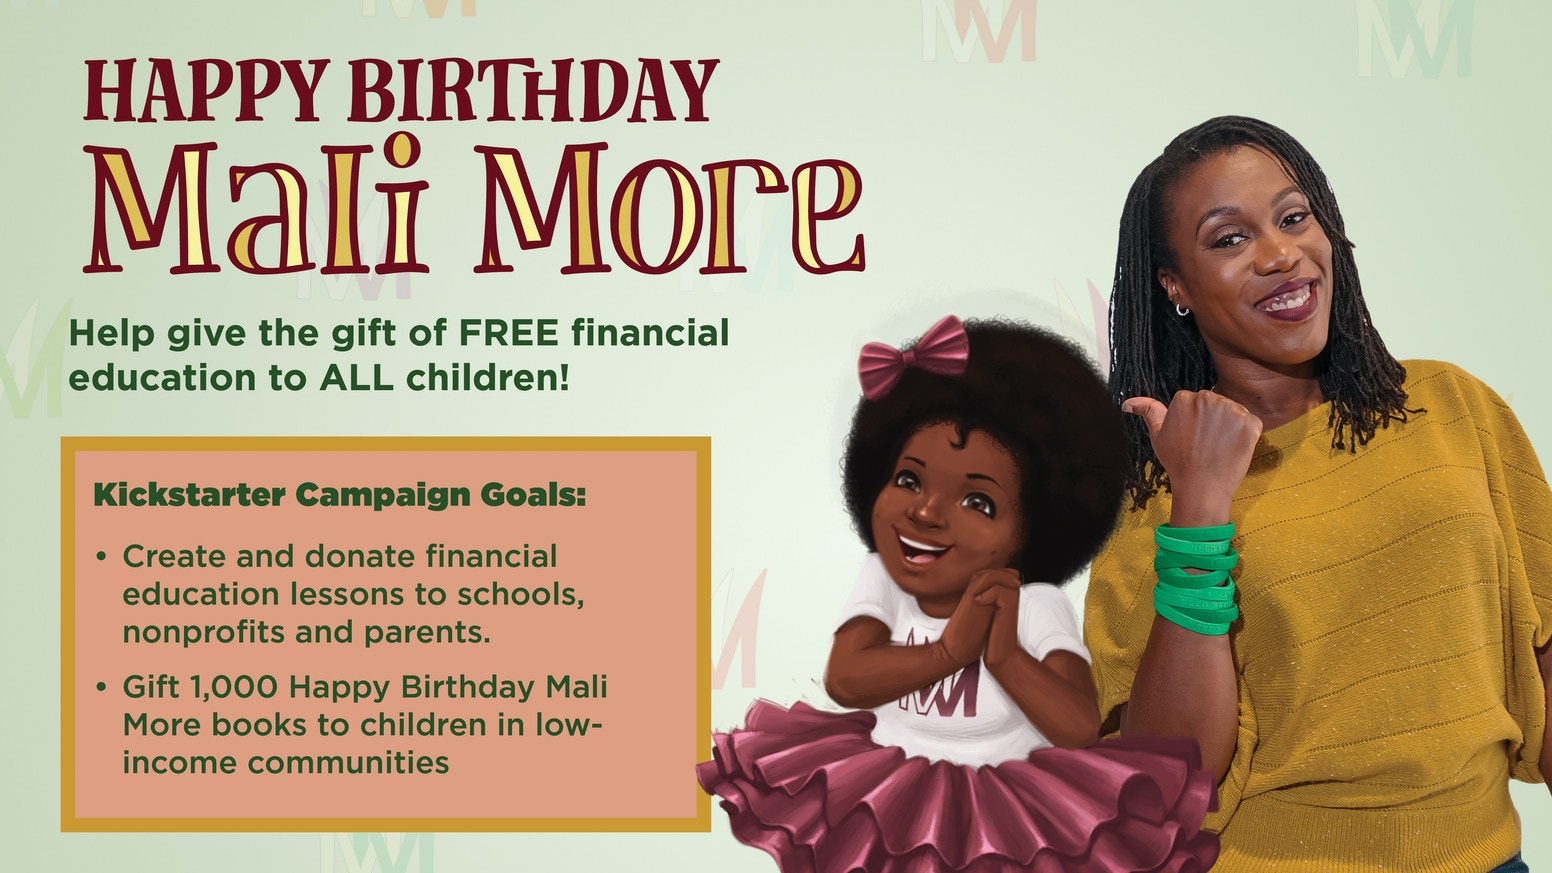 When you PREORDER, Happy Birthday Mali More, the funds are used to hire teachers to create FREE, financial education for ALL children & to gift 1000+ Happy Birthday Mali More books to kids in low-income communities.